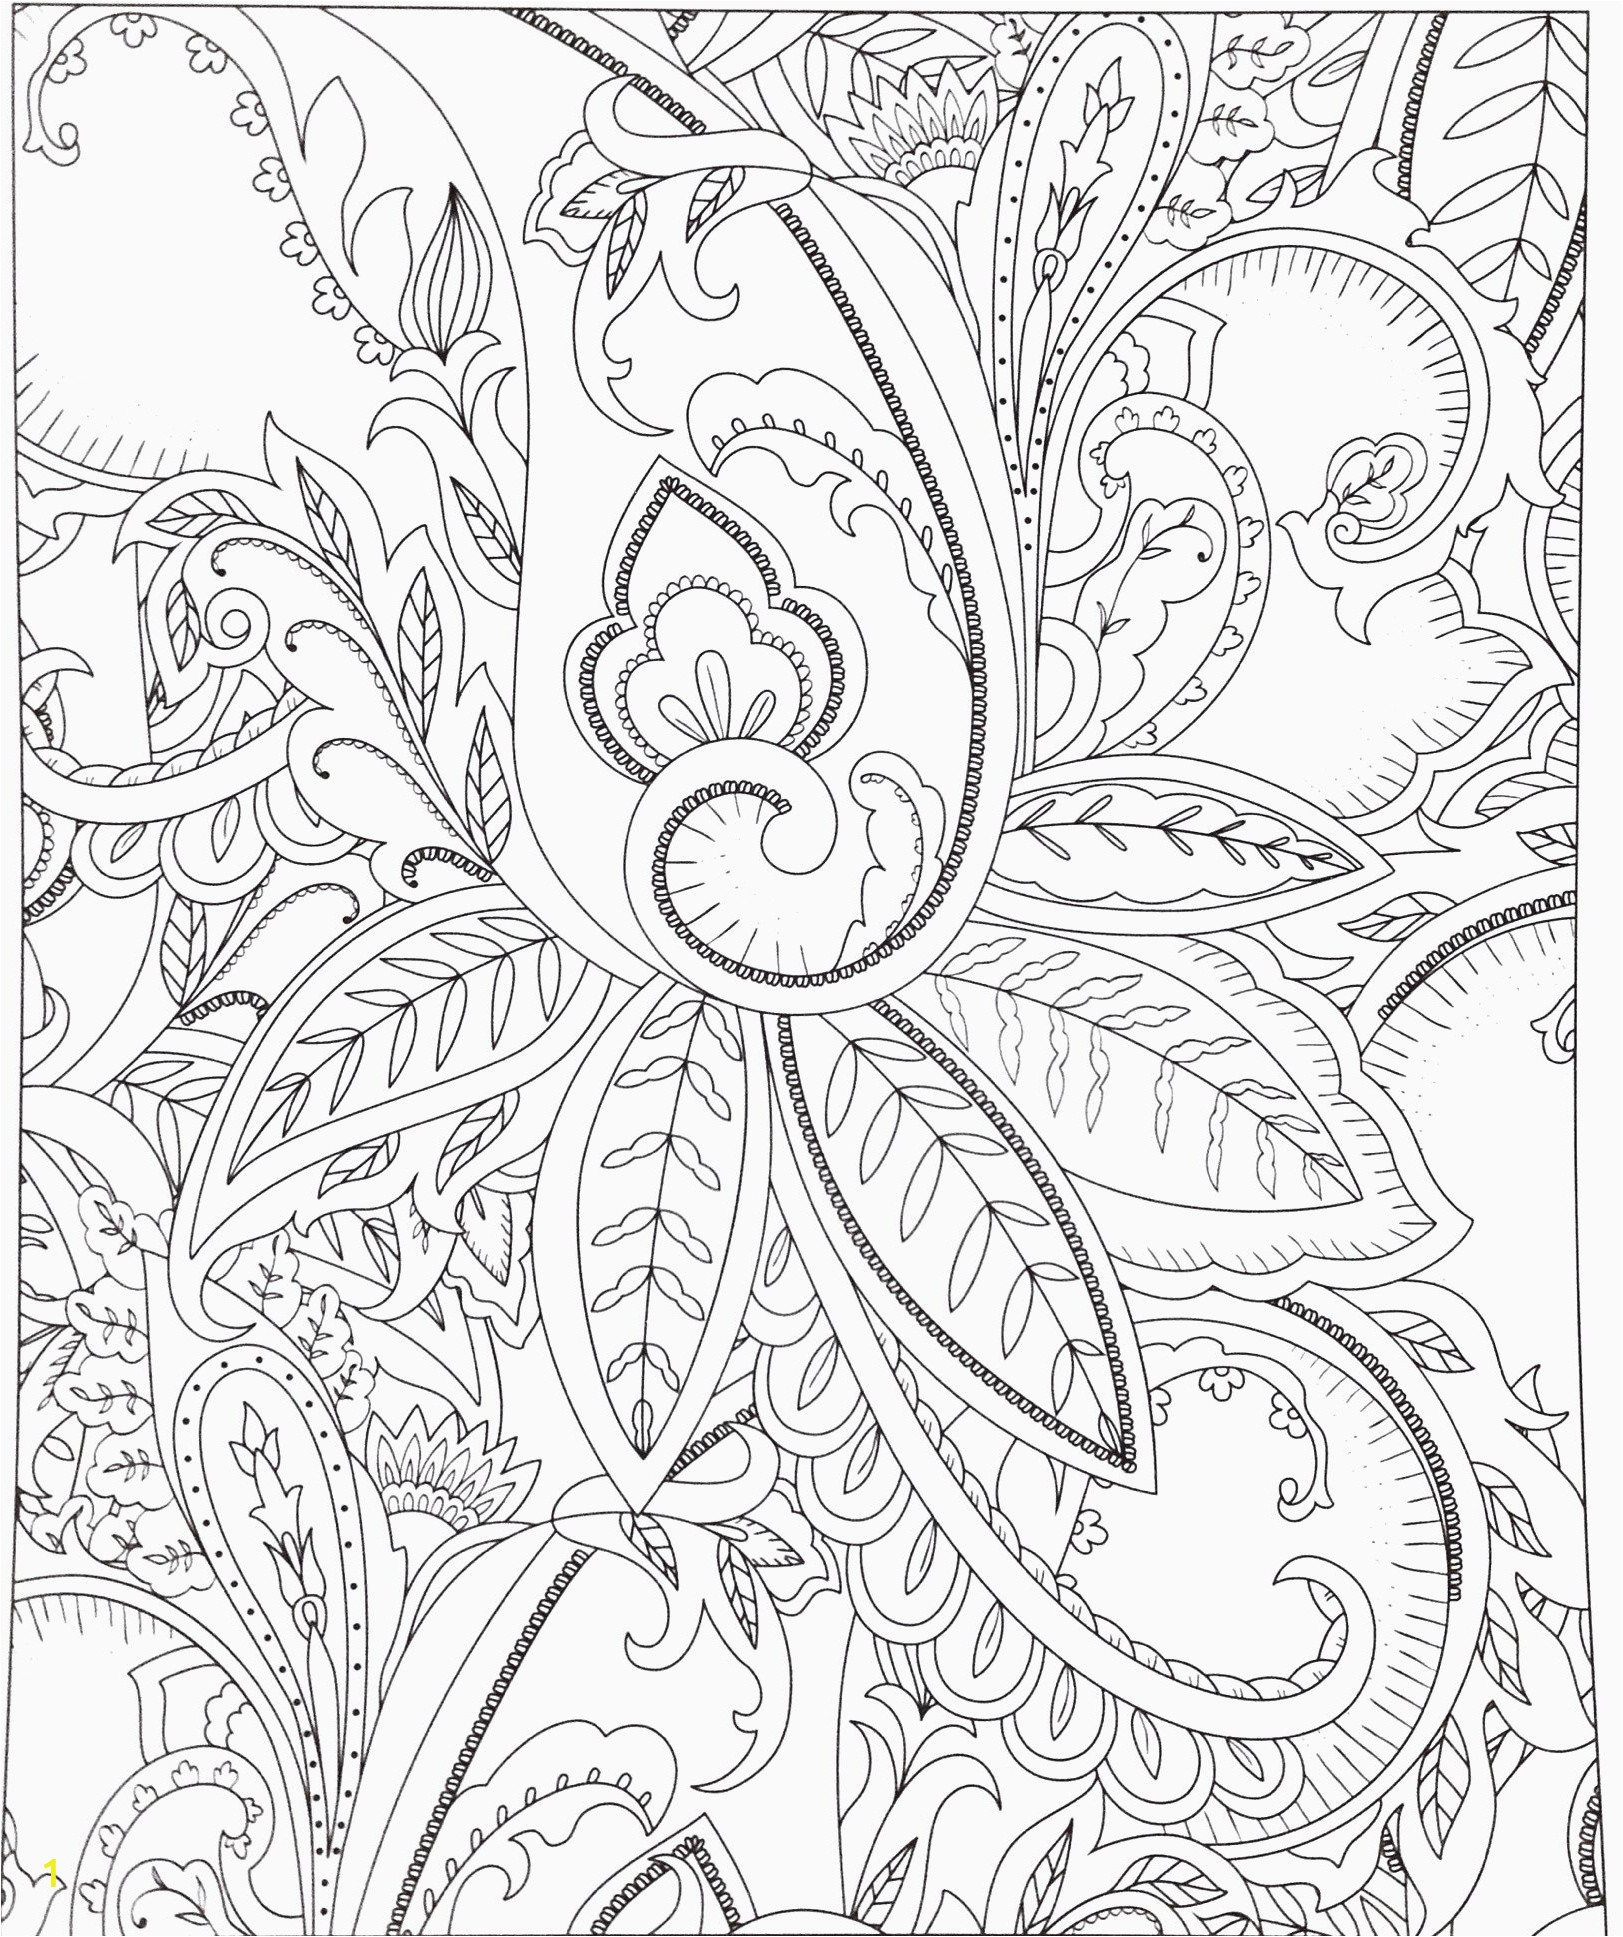 jesus healing the blind man coloring page cool gallery employee sign in sheets elegant mining resume templates junior of jesus healing the blind man coloring page